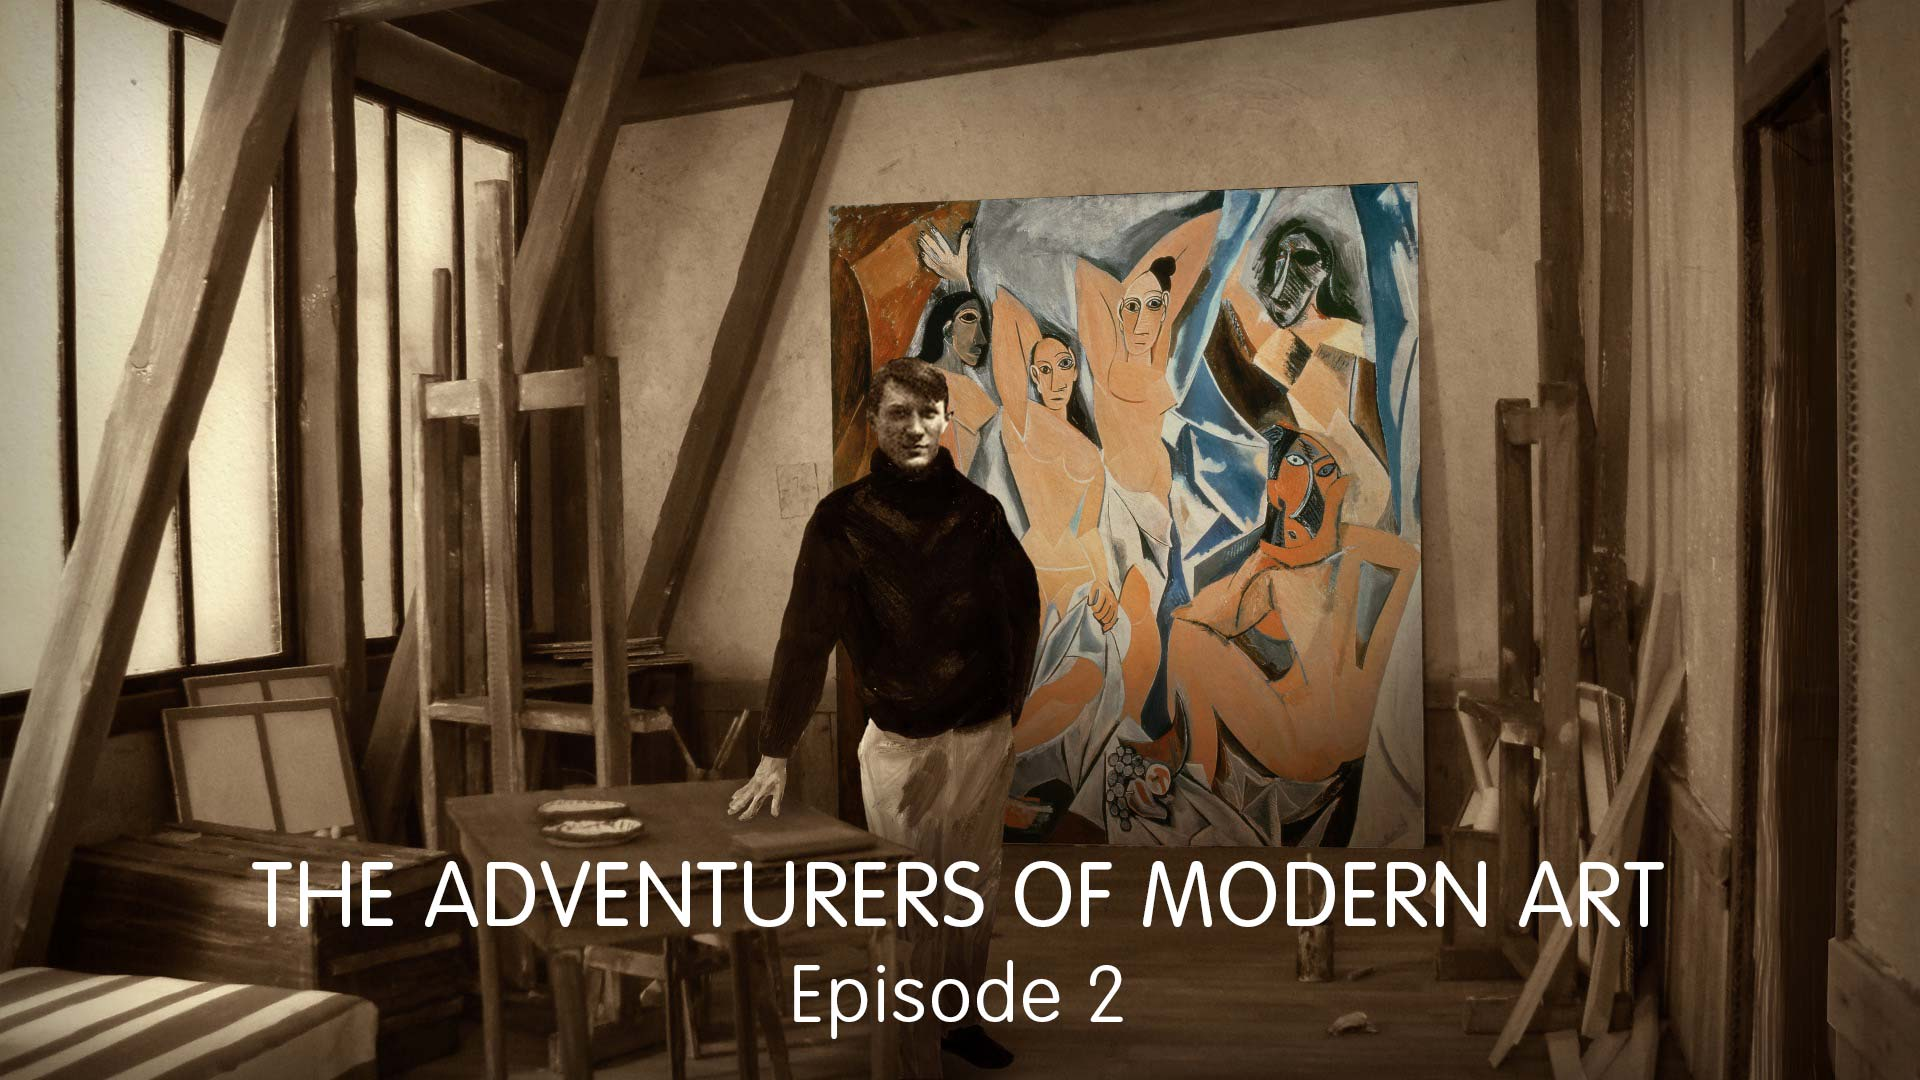 The Adventurers of Modern Art - Ep 2 - image